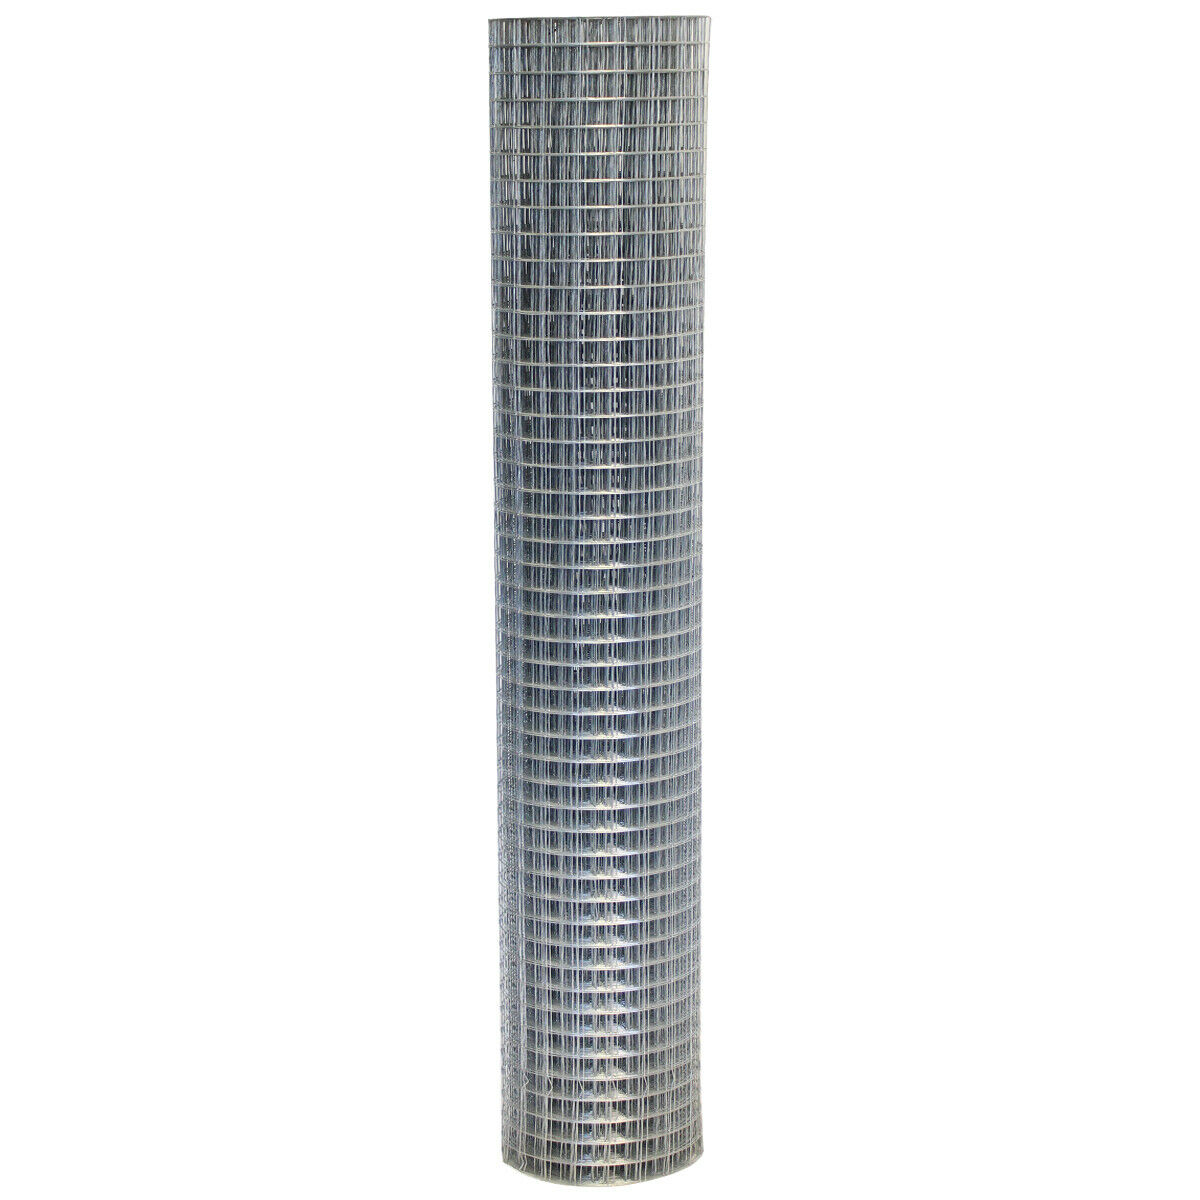 WIRE FENCING 1.8M x 10m Welded Wire Mesh Strong Galvanised Steel ...